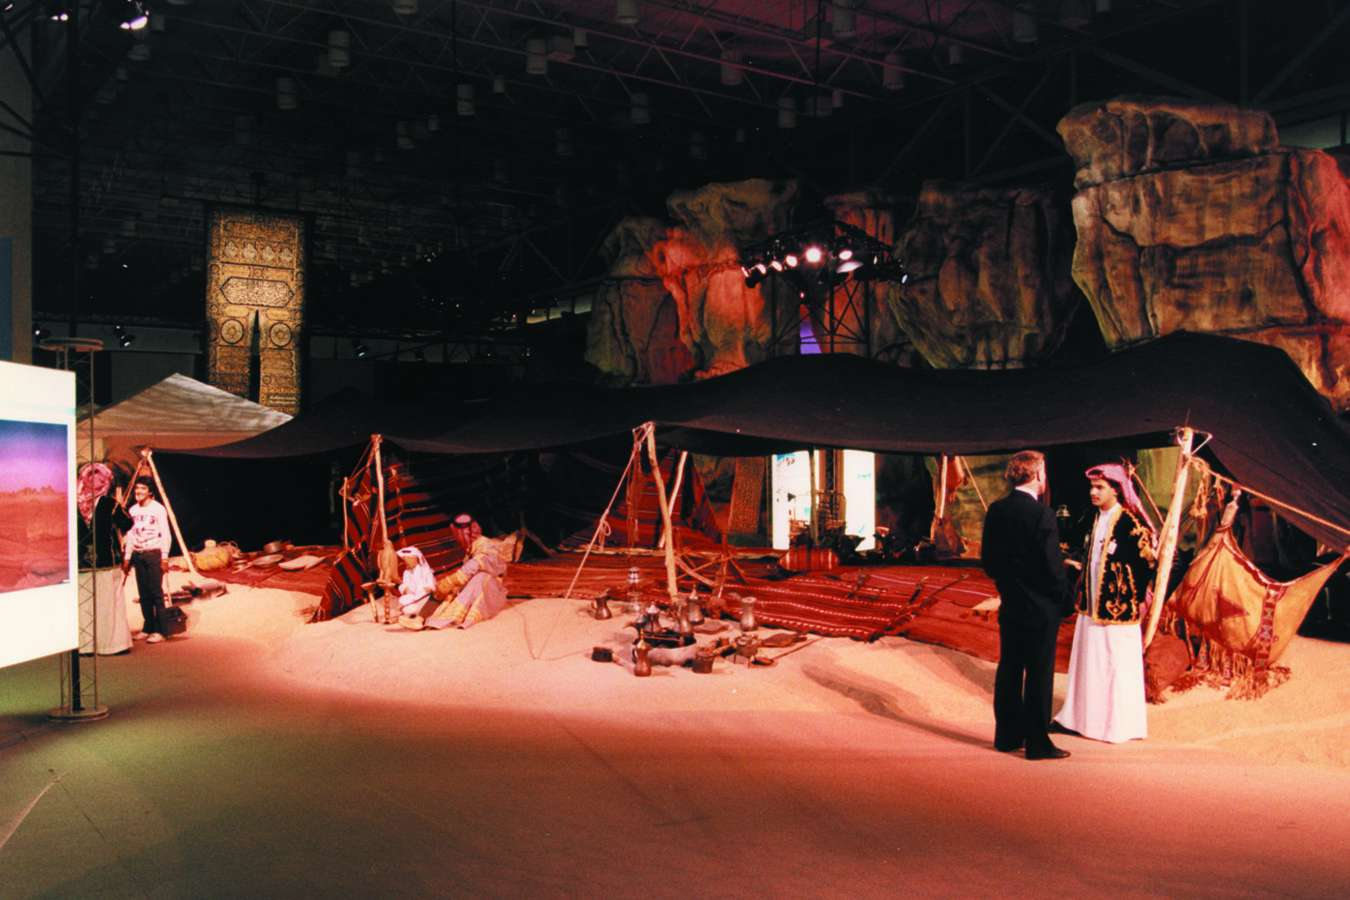 ksa01 : THE LAND: Bedouin Tent – Exhibitry Travelled in a Mile-Long Caravan (81 Trailers)